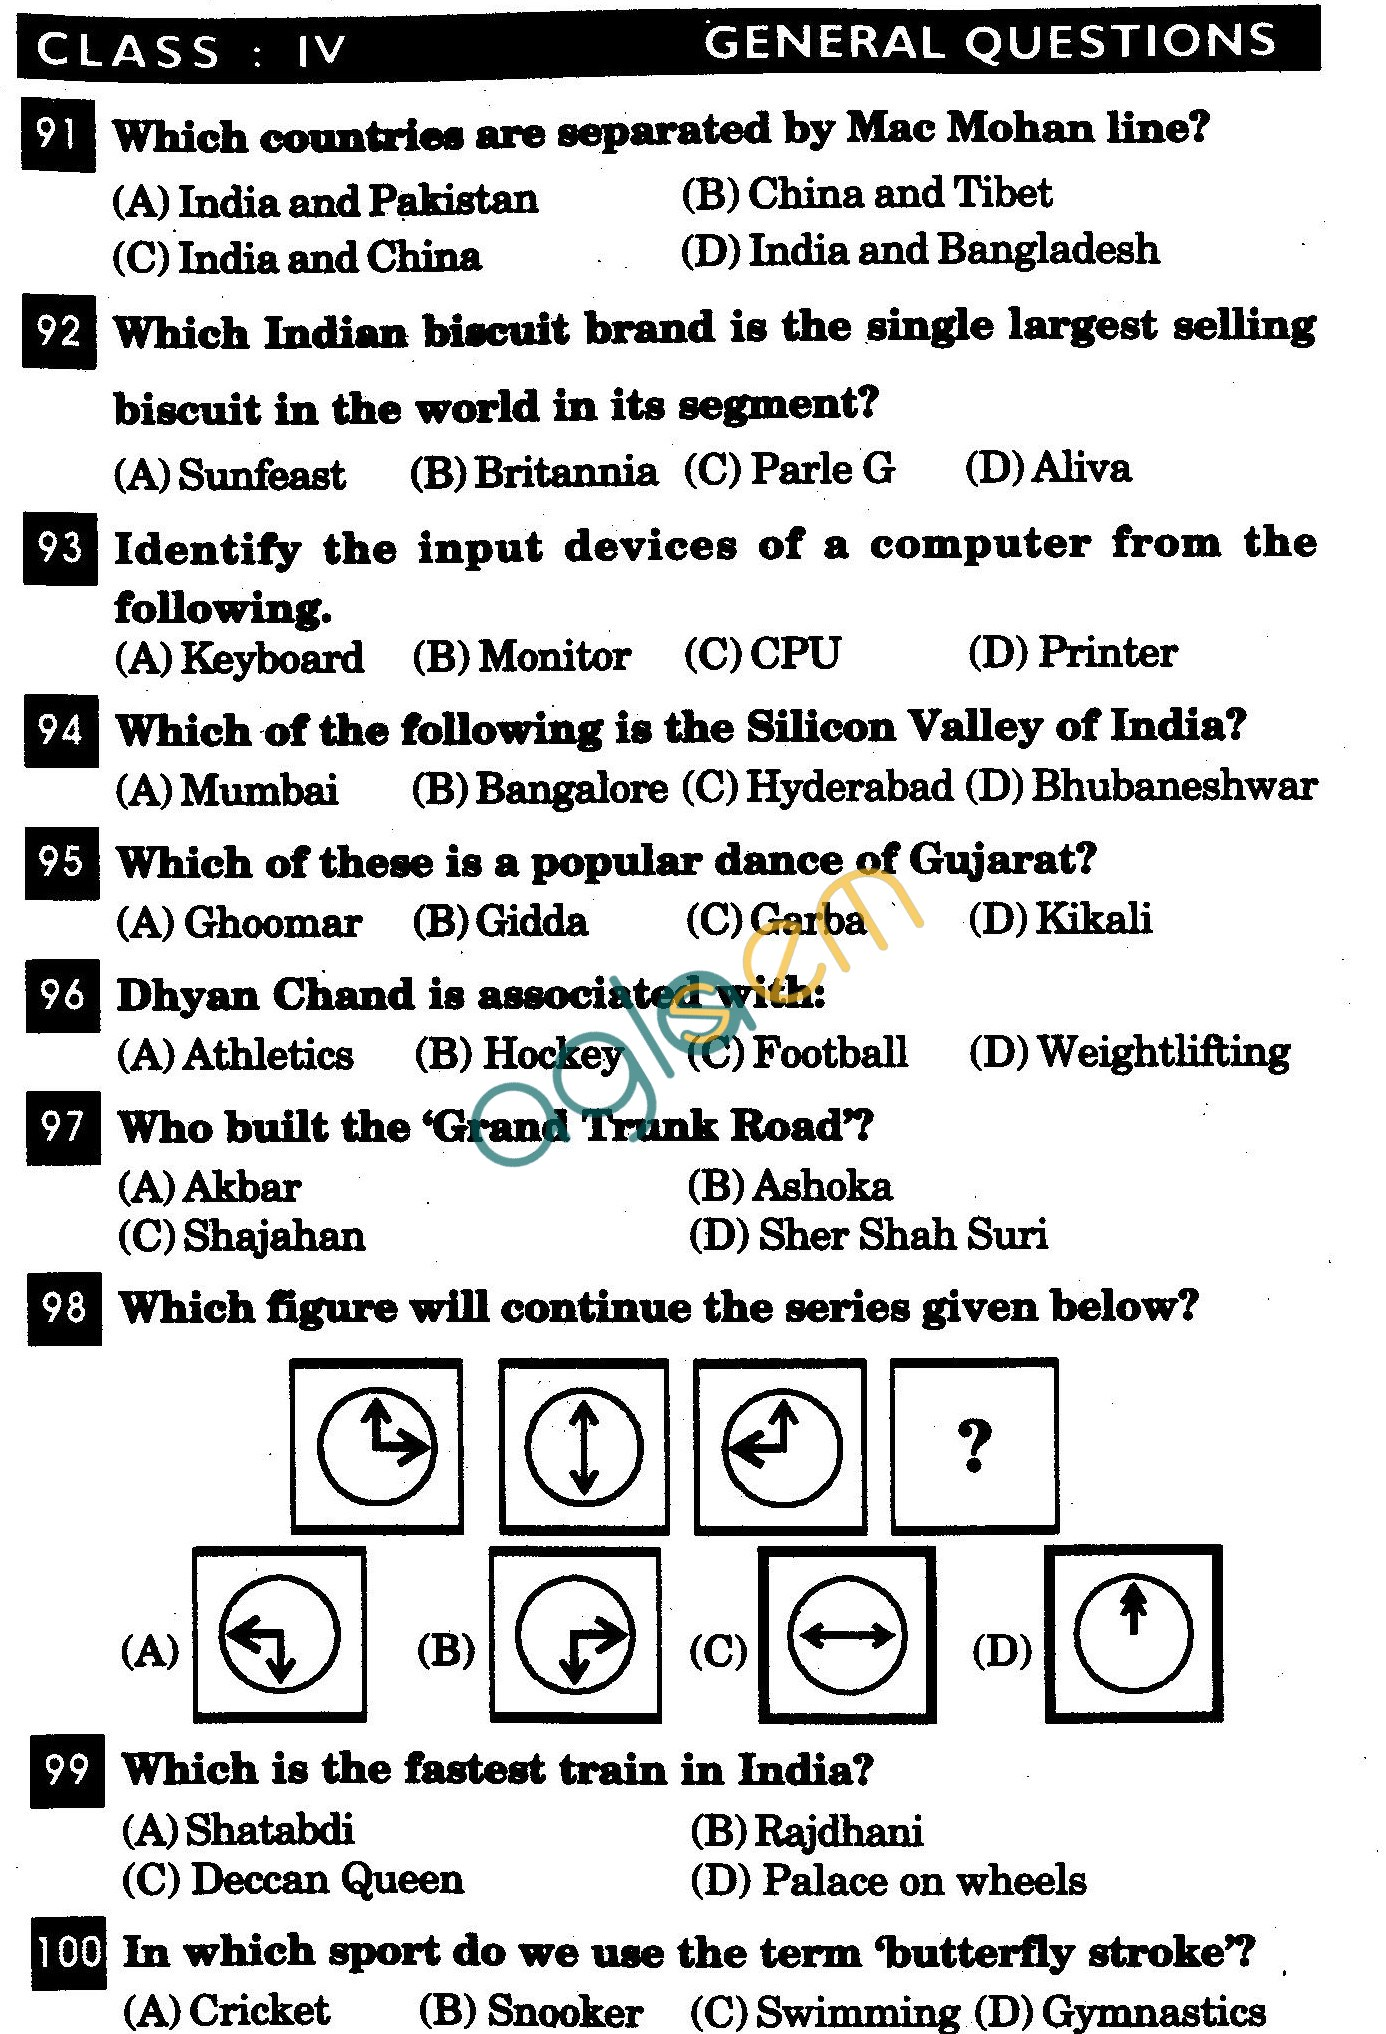 NSTSE 2011 Class IV Question Paper with Answers - General Knowledge